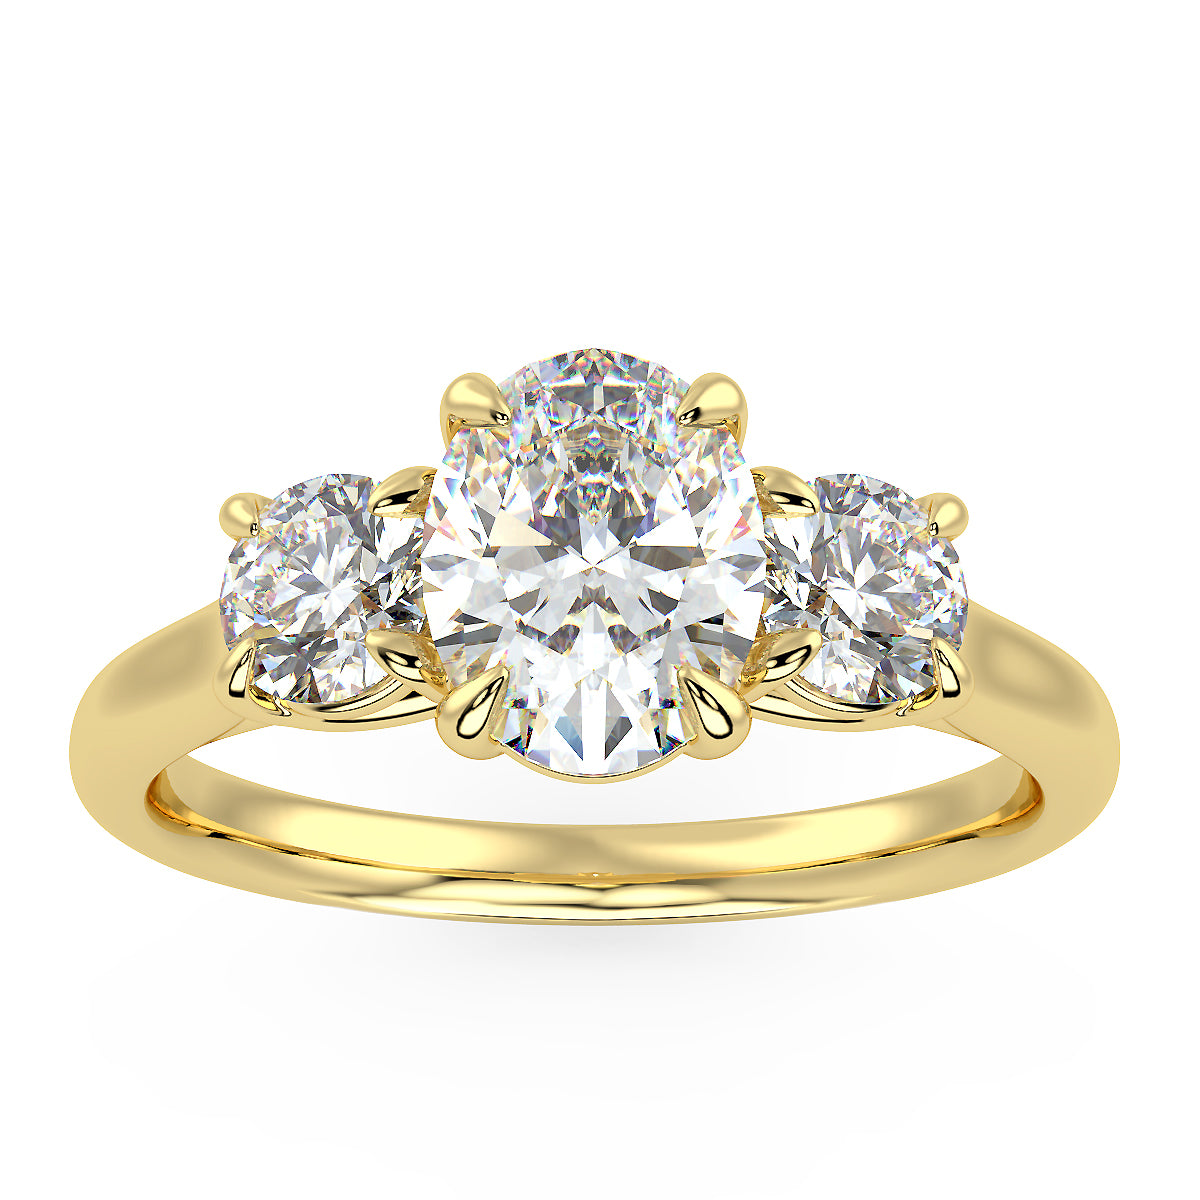 Centauri Oval Three-Stone Ring in Yellow Gold